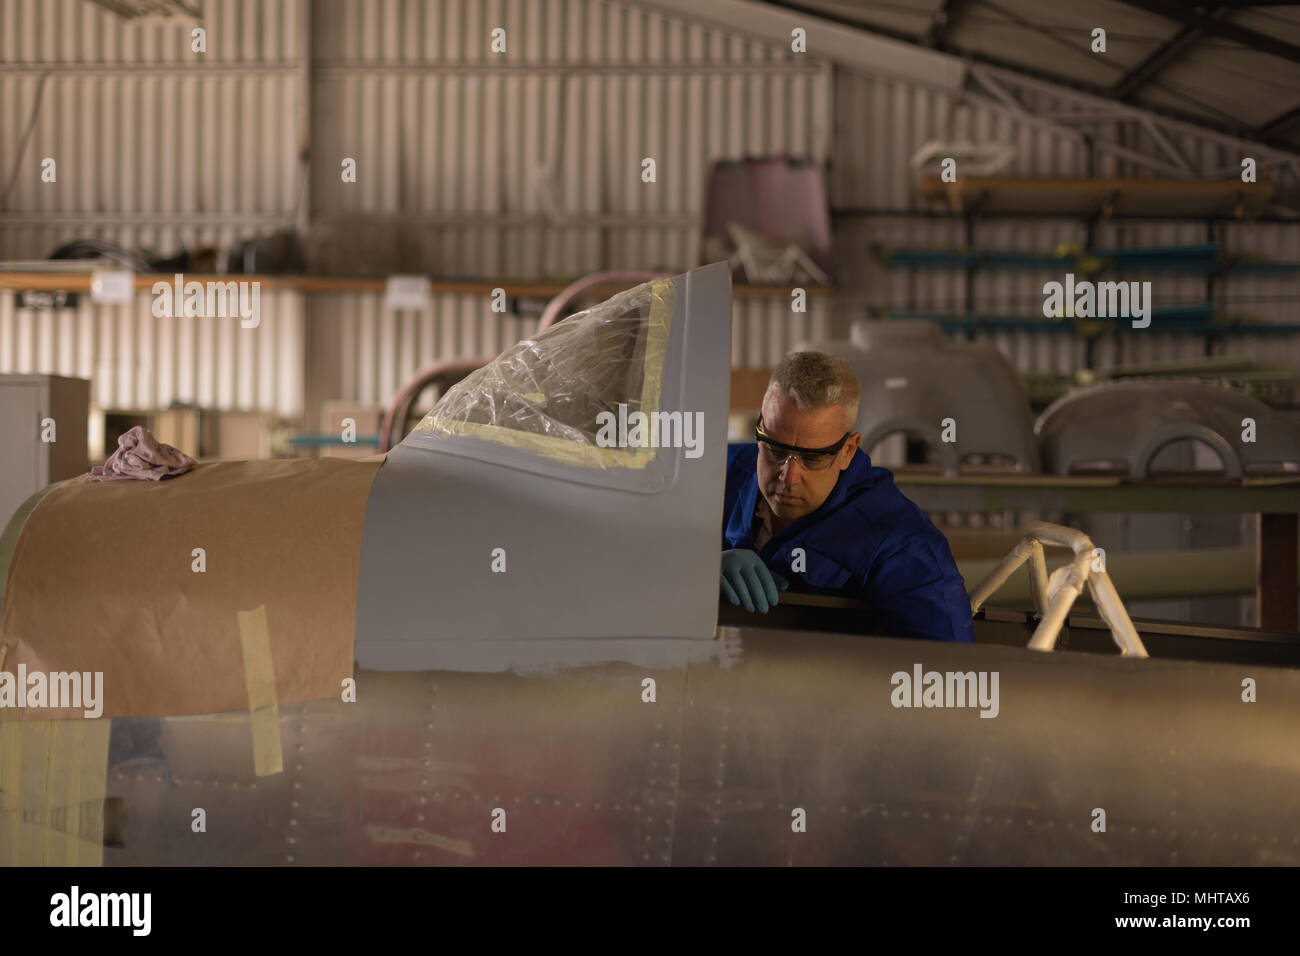 Engineer checking parts of plane - Stock Image